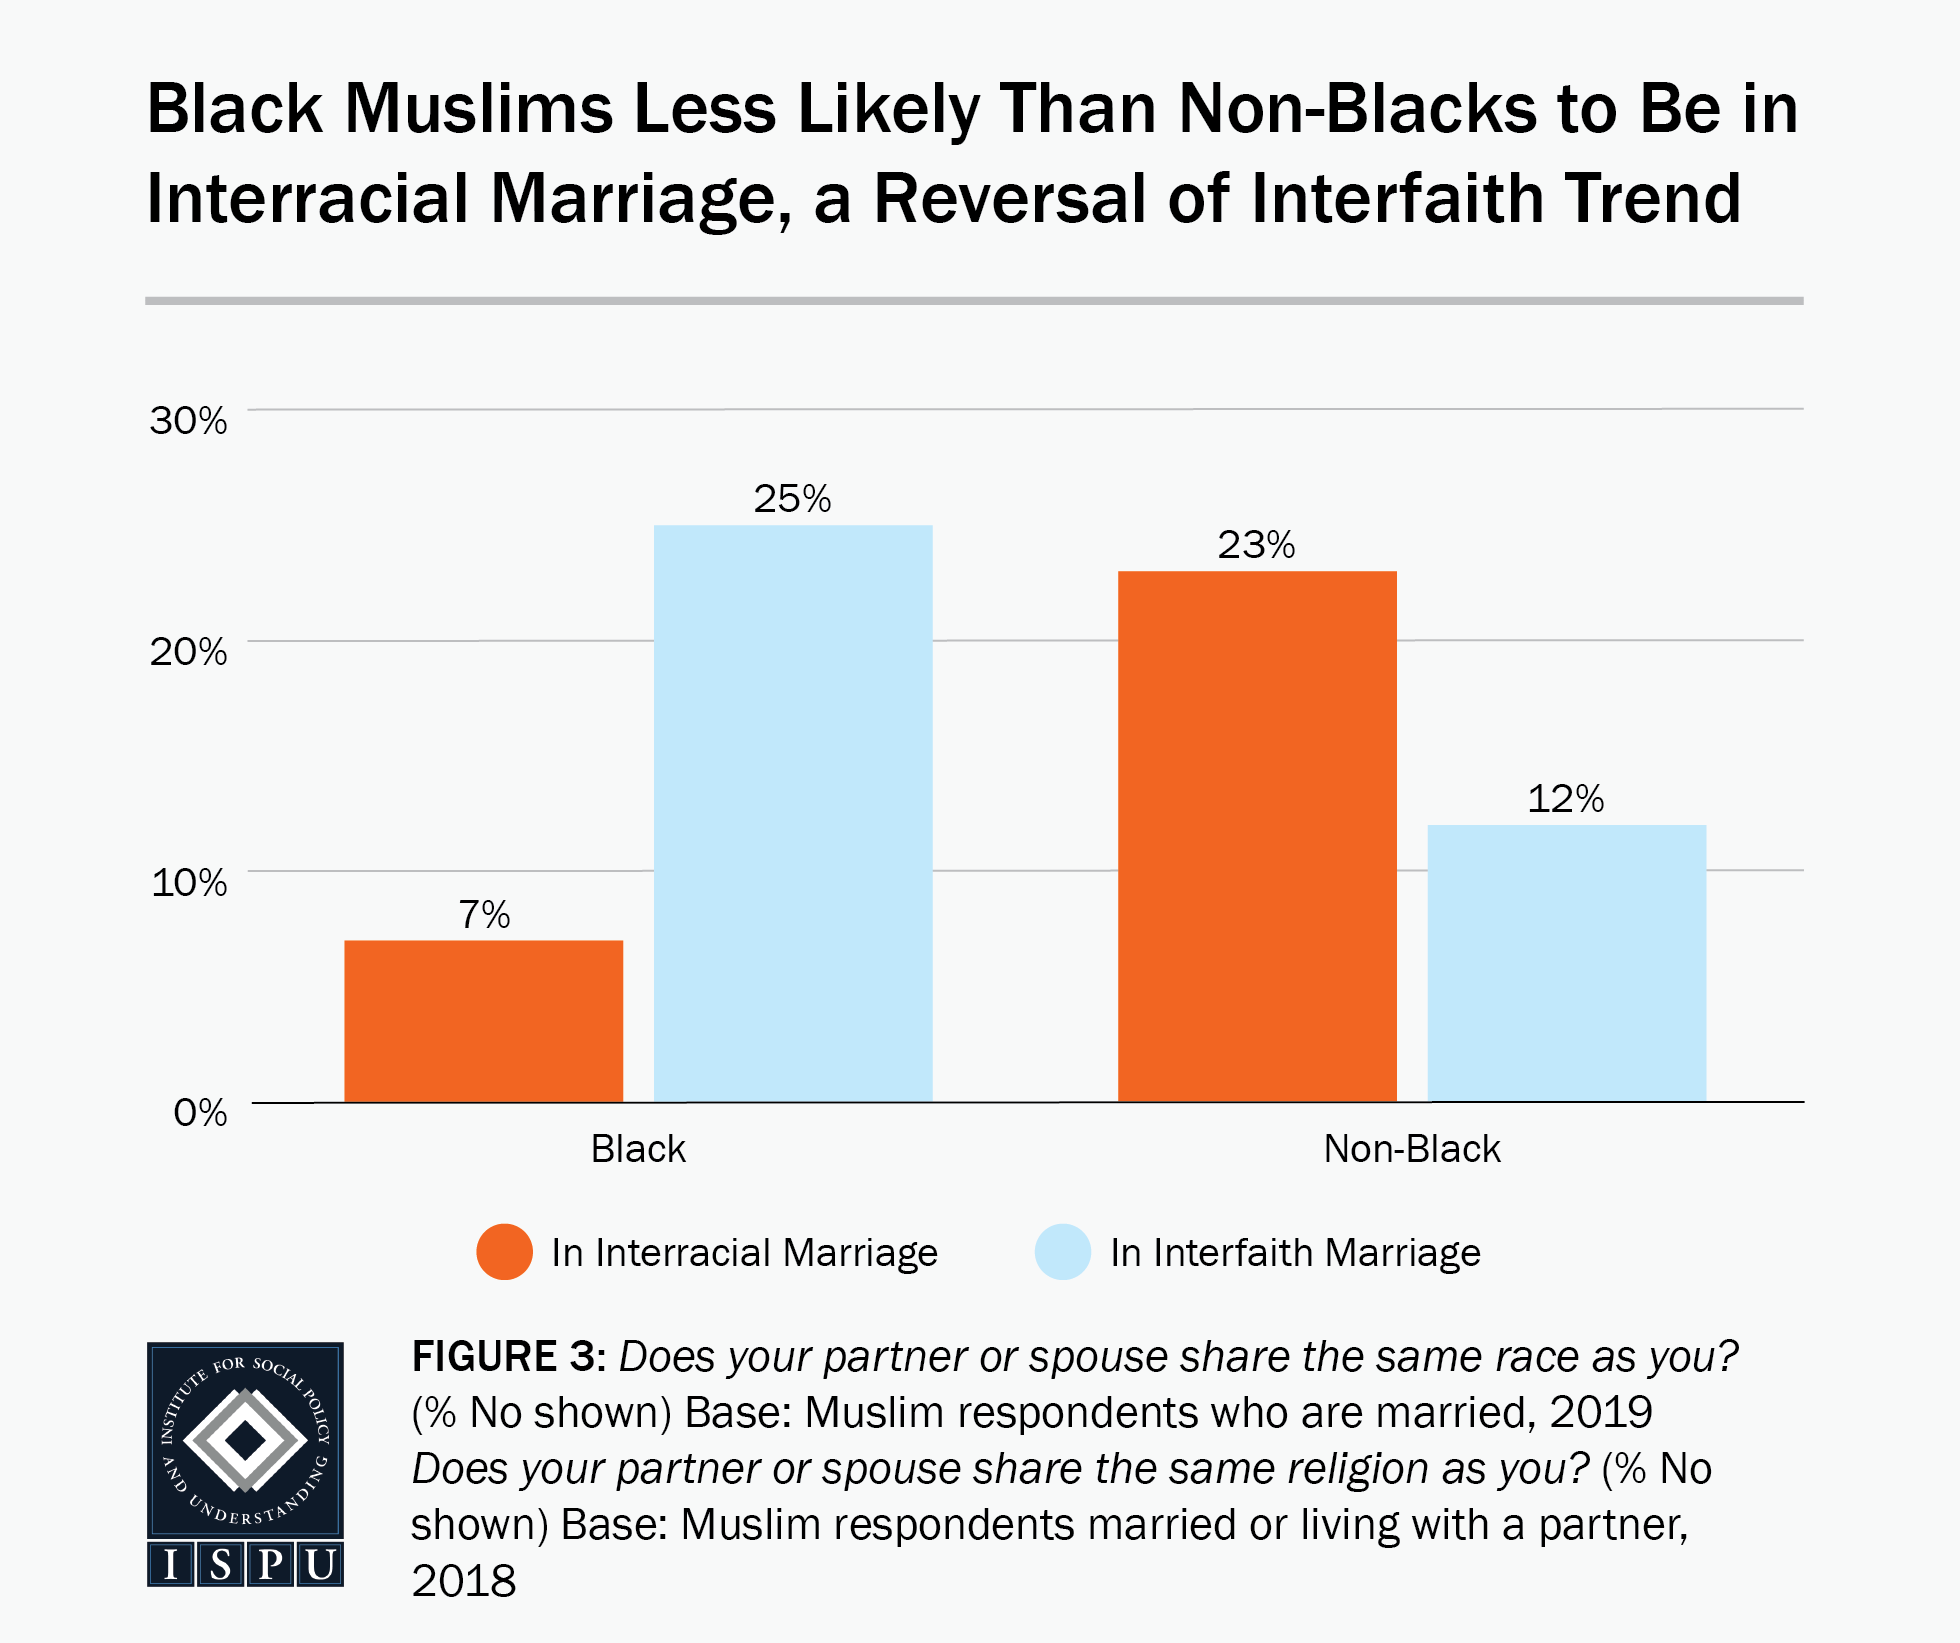 Figure 3: A bar graph showing that Black Muslims (7%) are less likely than non-Black Muslims (23%) to be in an interracial marriage, a reversal of the interfaith trend